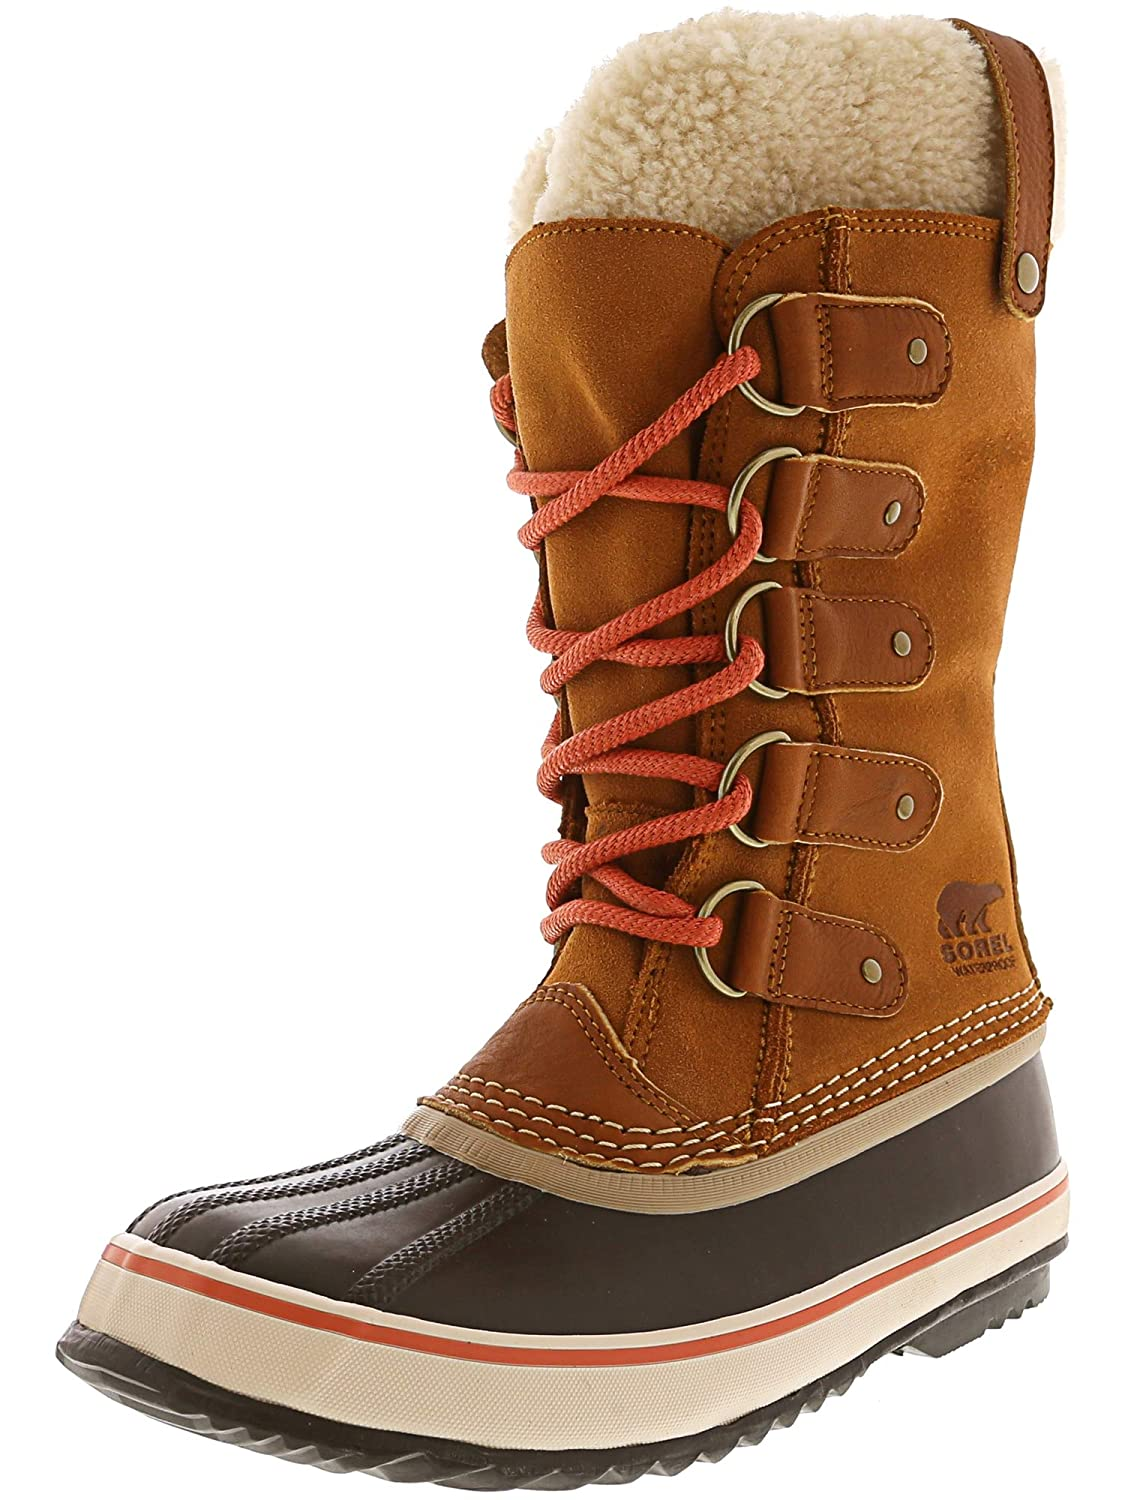 Sorel Joan of Arctic Shearling, Damen Schneestiefel